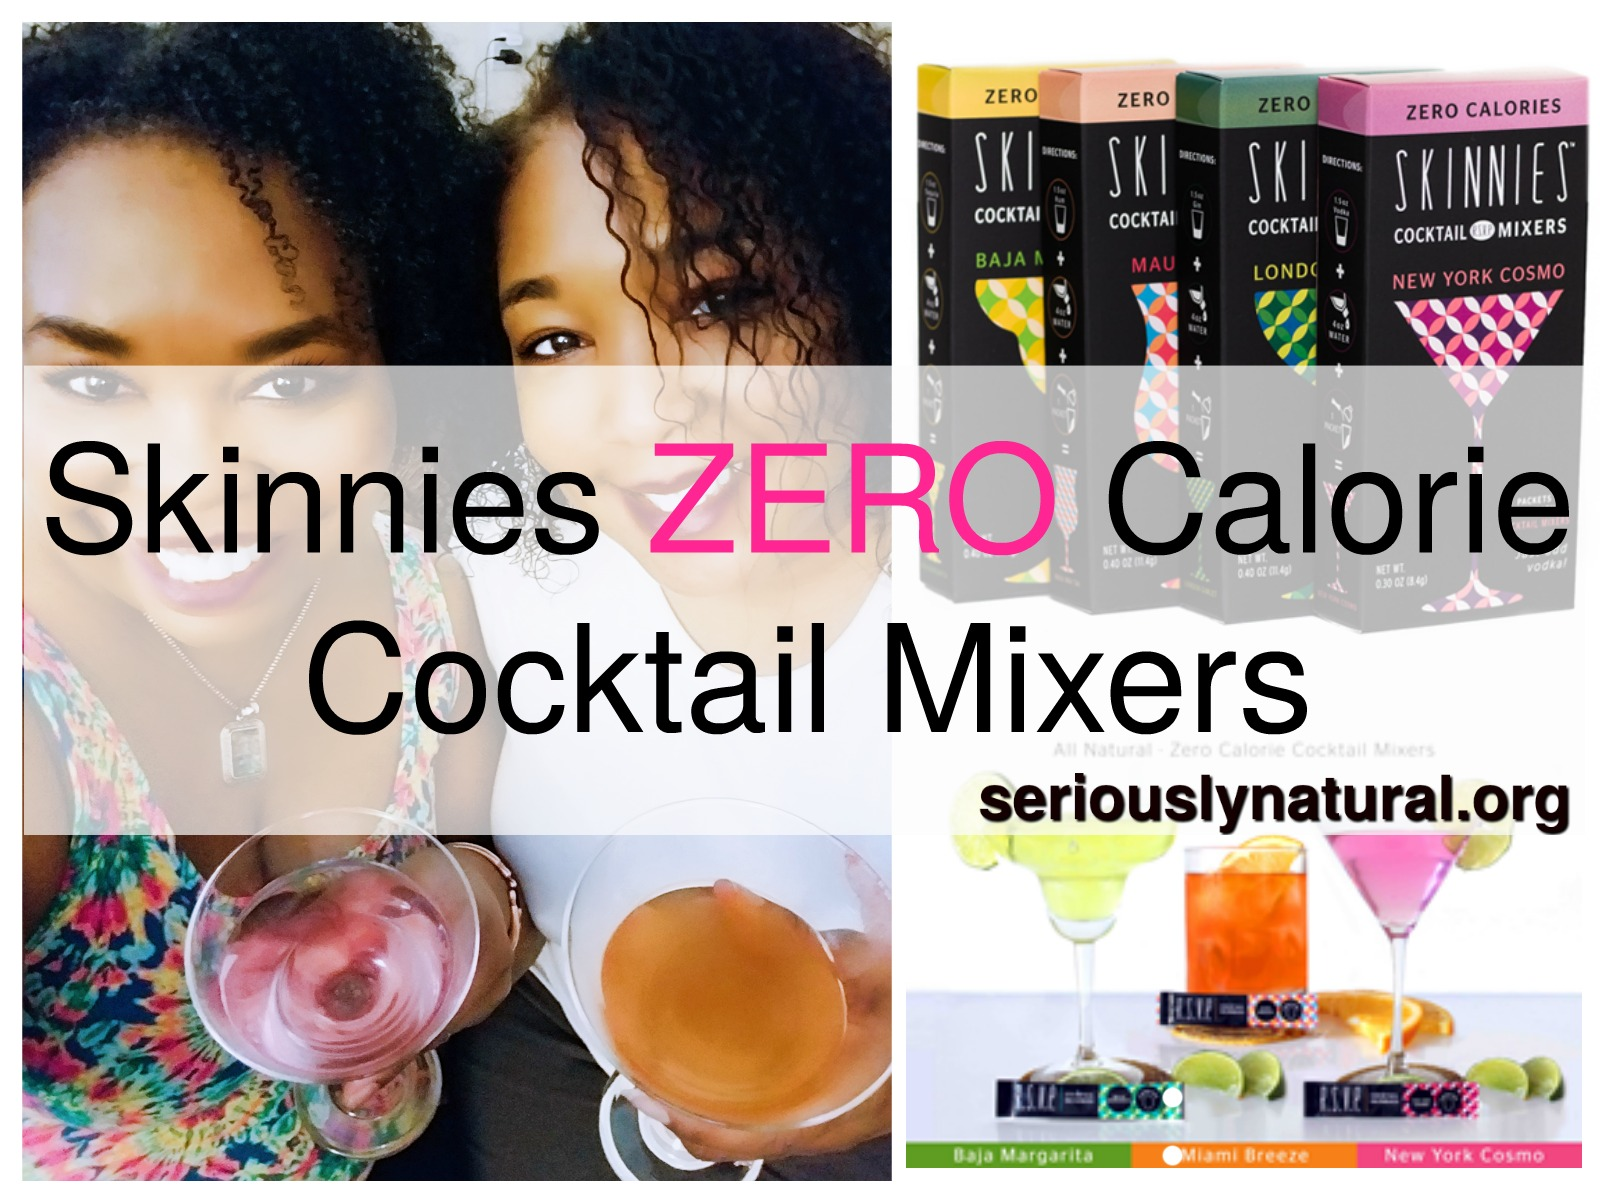 Click here to buy RSVP Skinnies zero calorie Cocktail Mixers for the perfect Mother's Day gift!